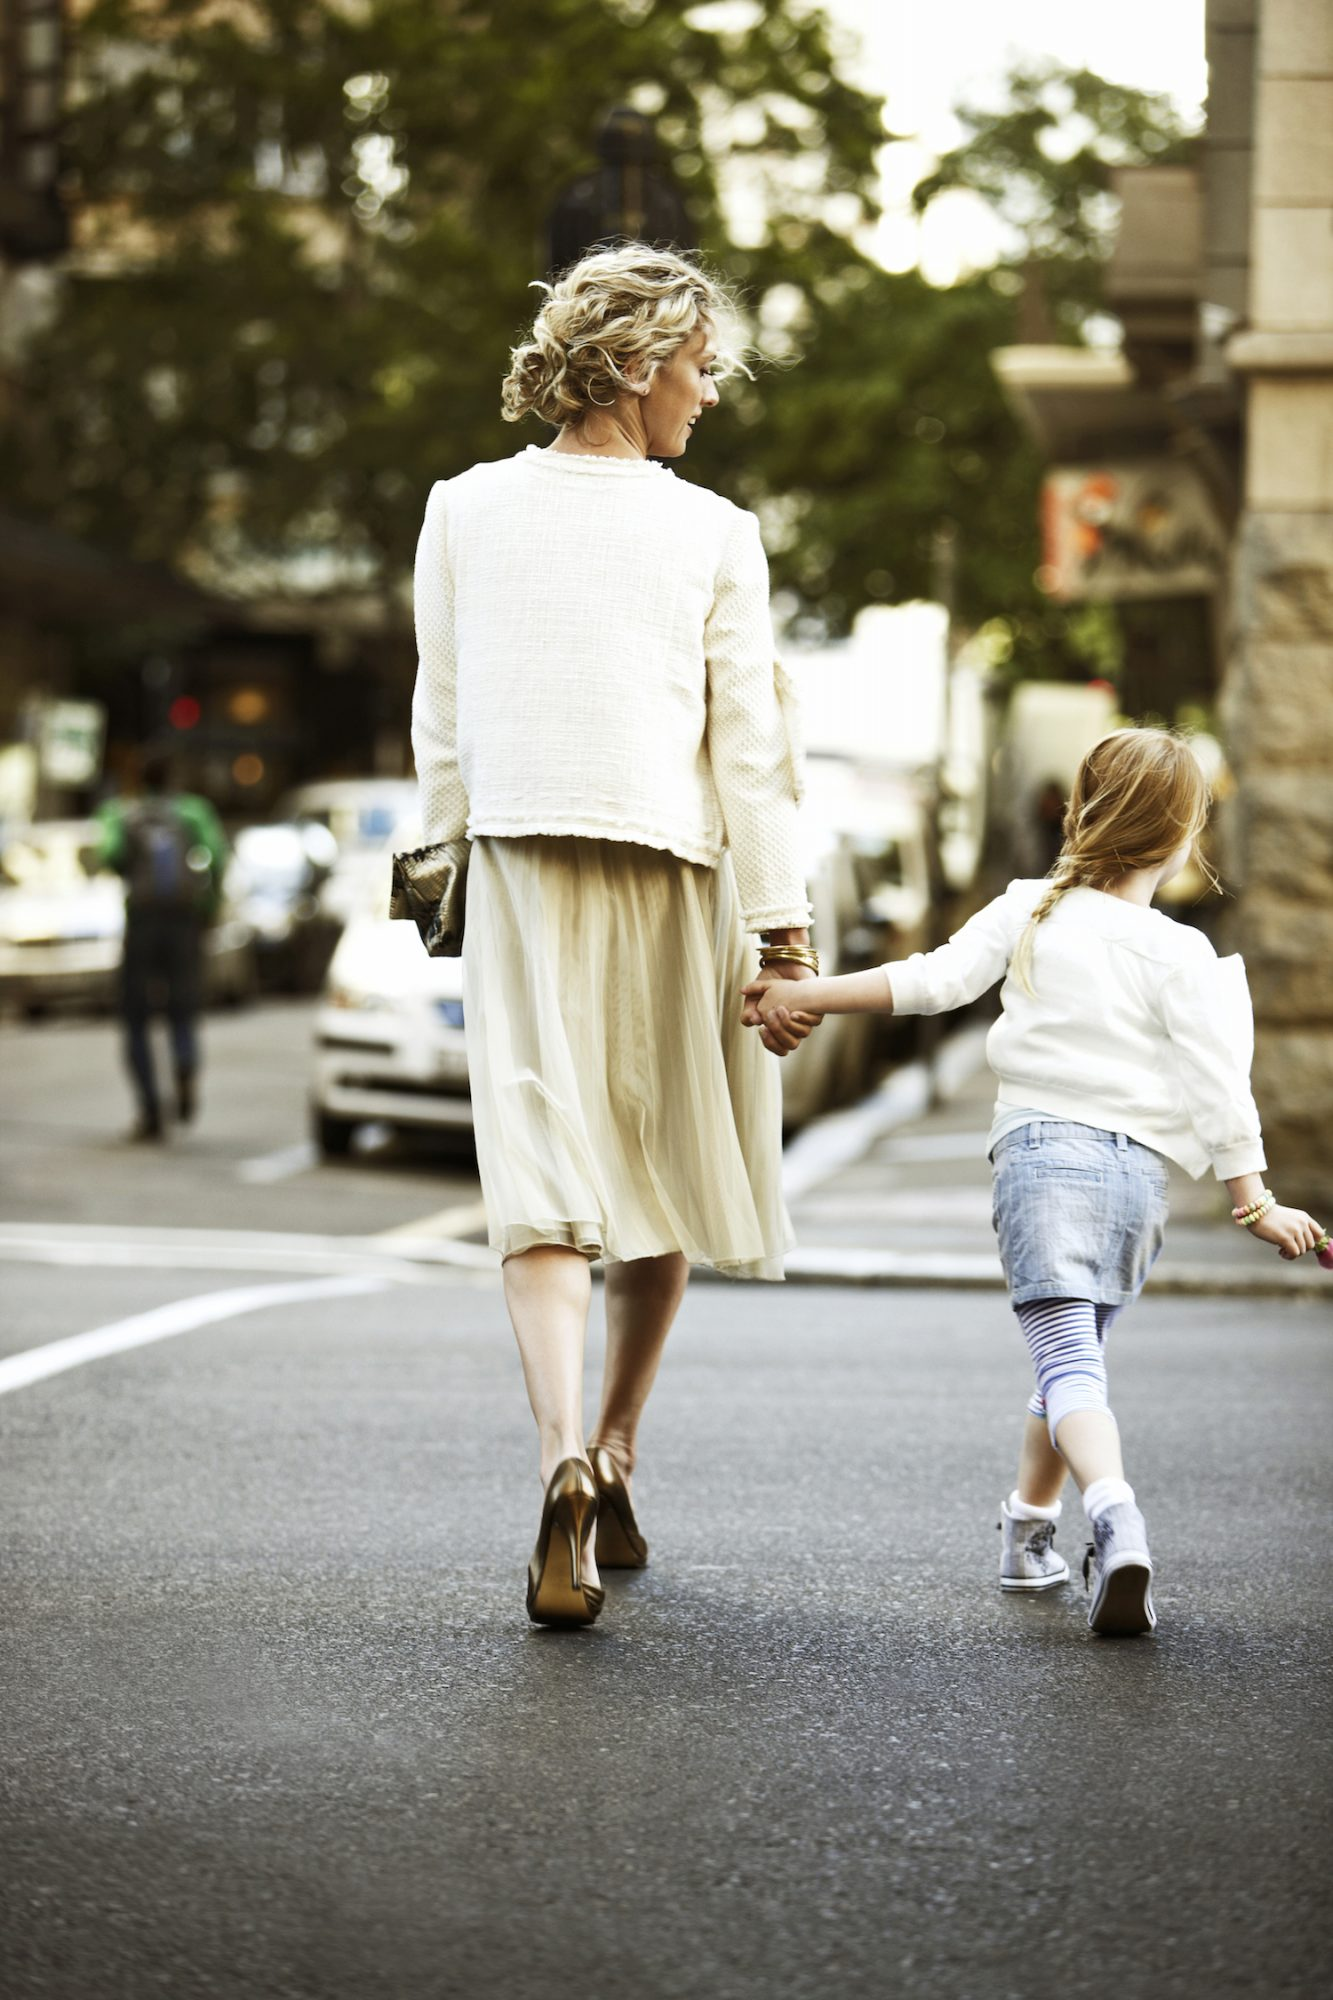 mother and daughter crossing street holding hands